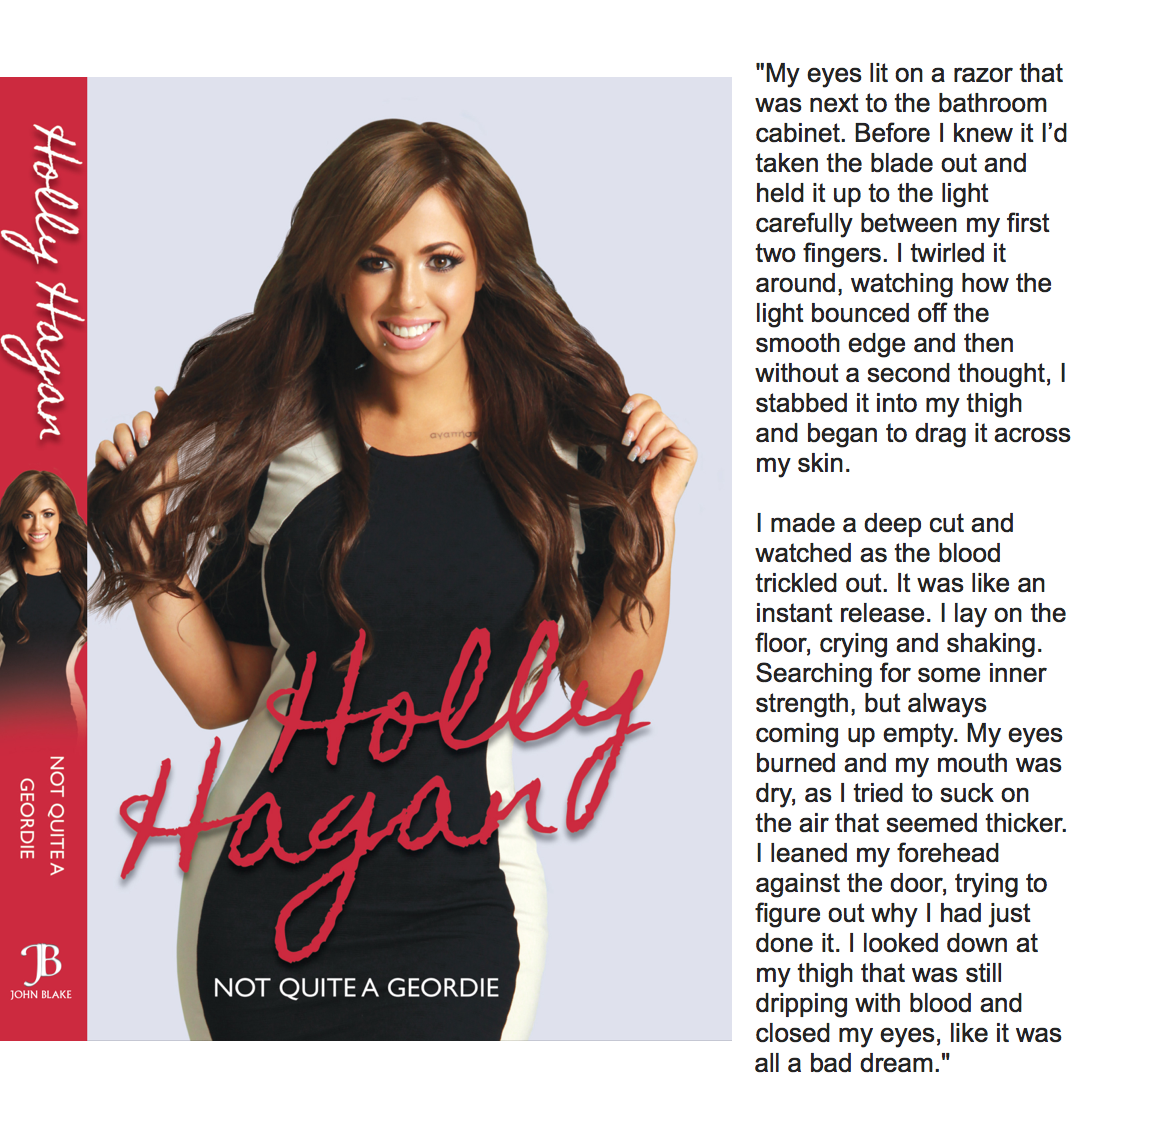 RT @Marniegshore: Reading @HollyGShore book & Im proper crying man the beginning bit is so sad. Can't wait to see what happens http://t.co/…